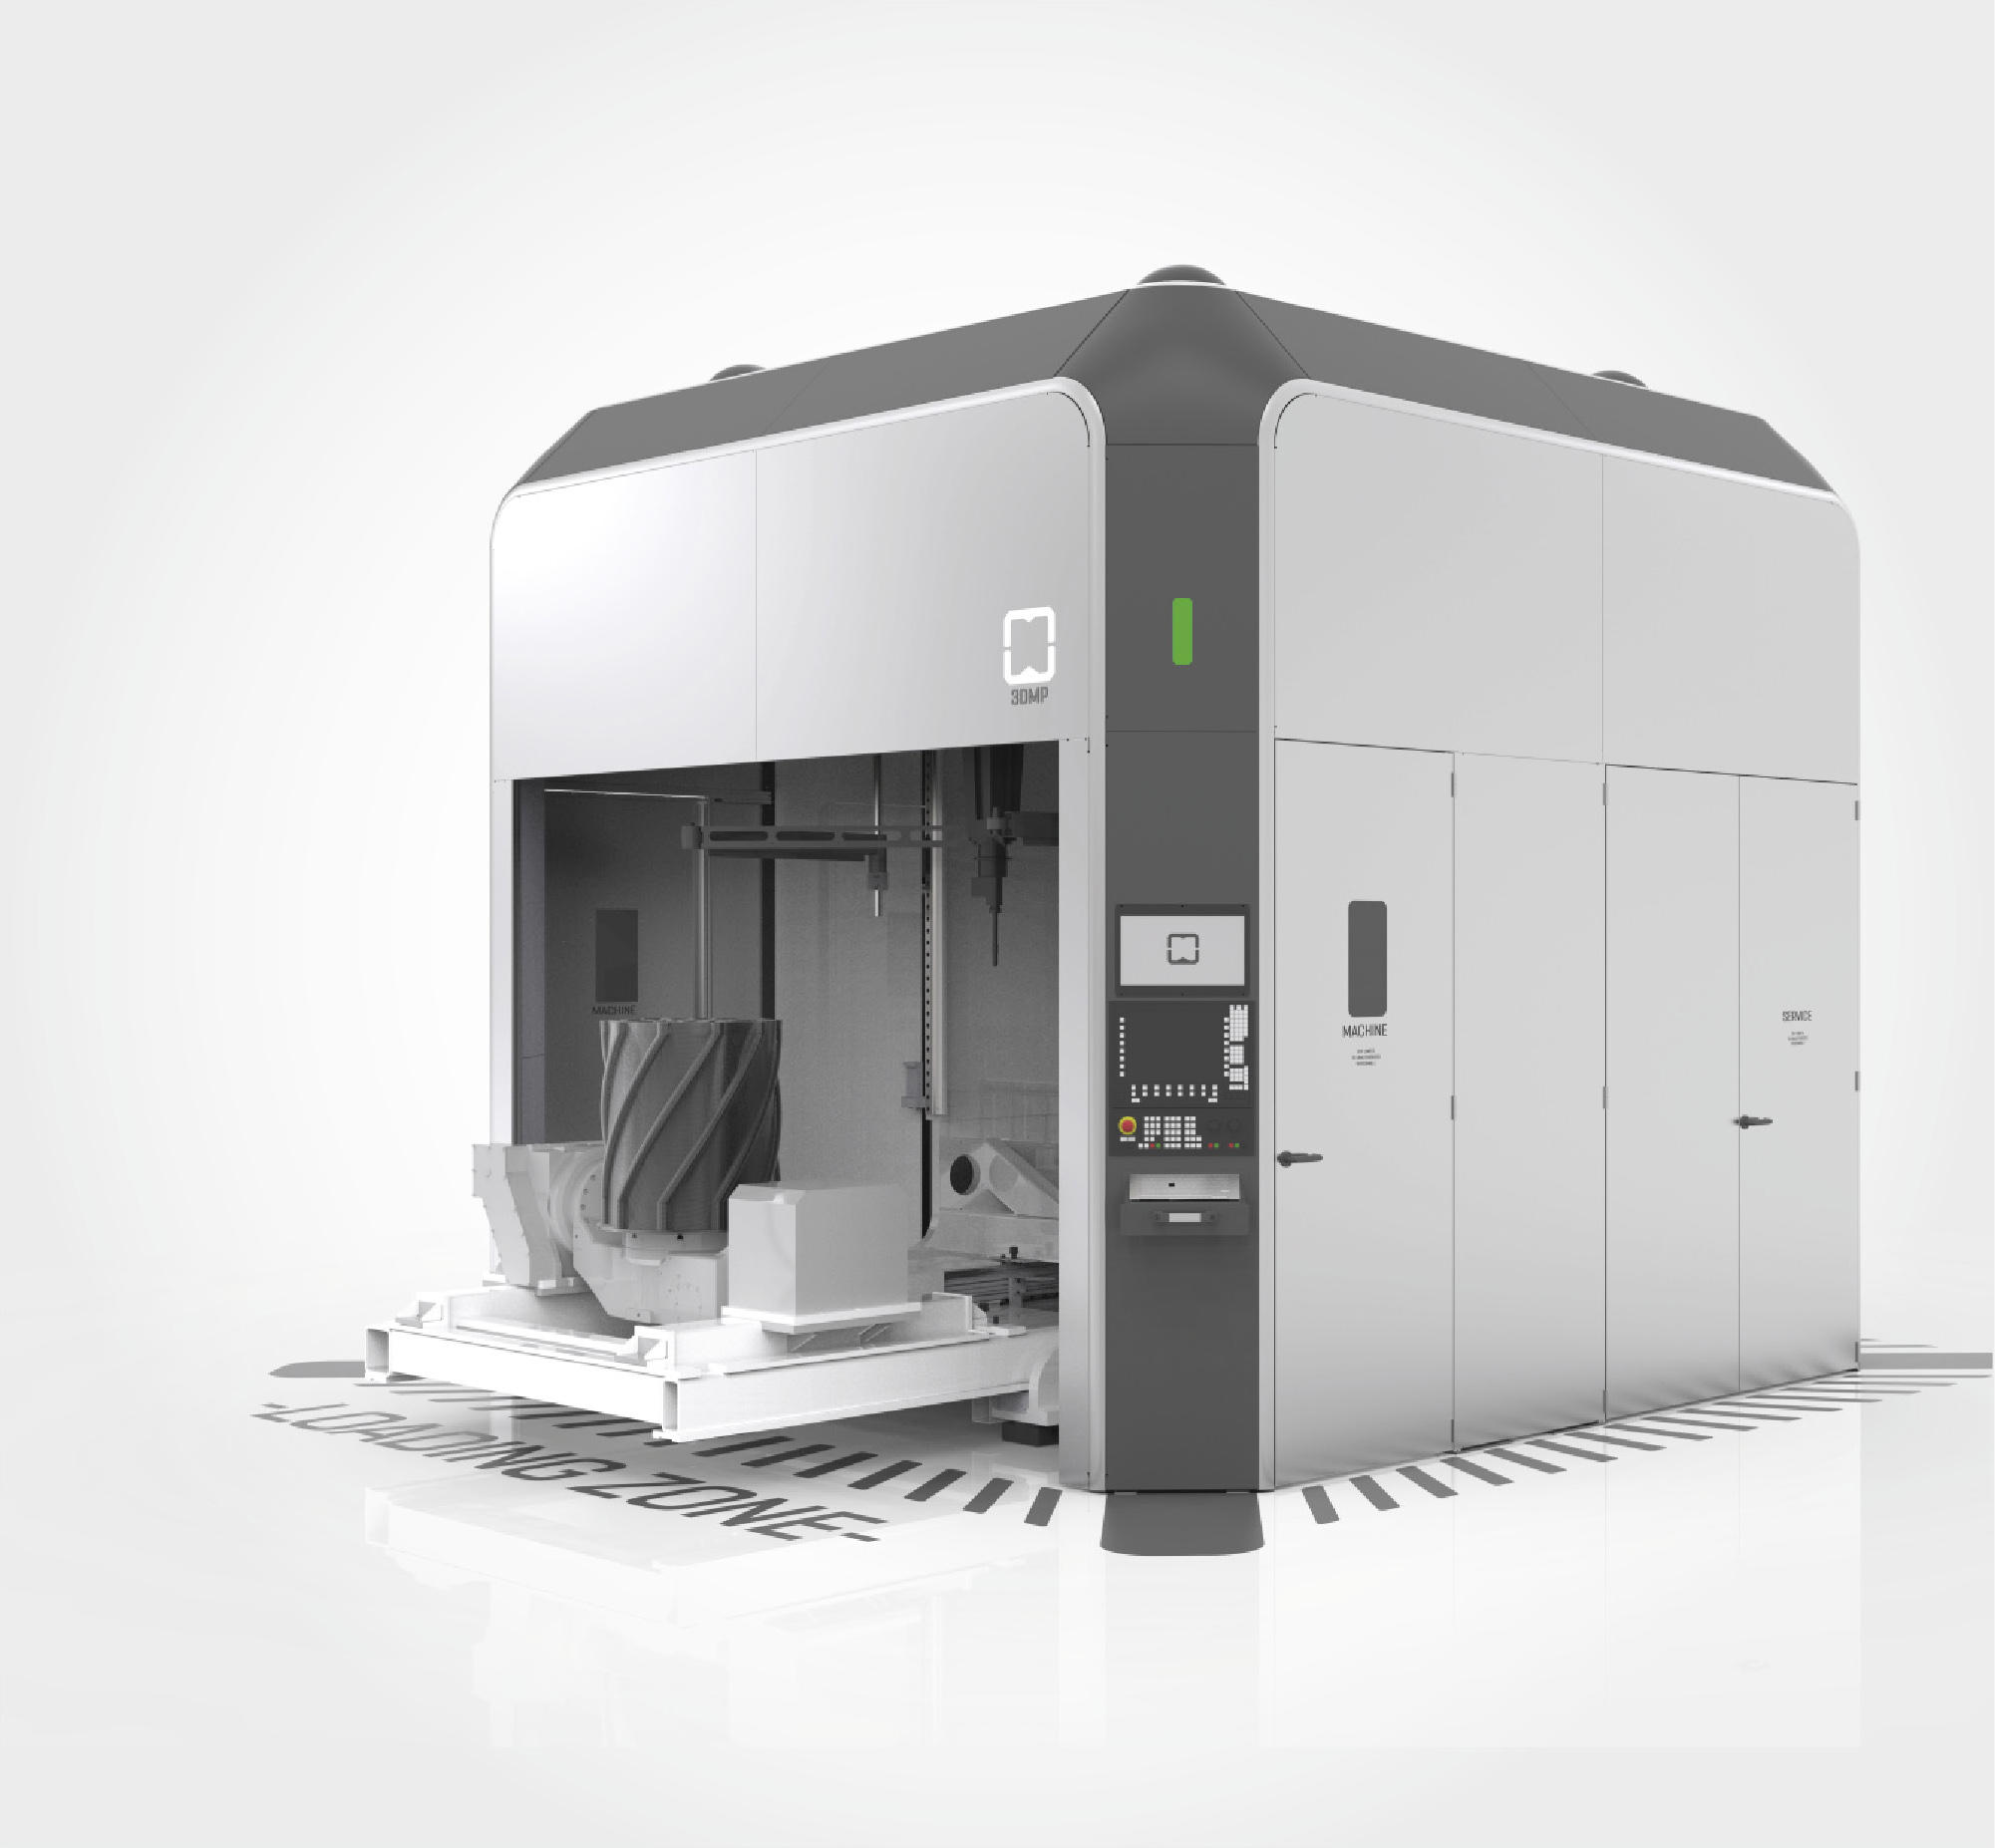 The arc605 3D printer. Image via GEFERTEC.